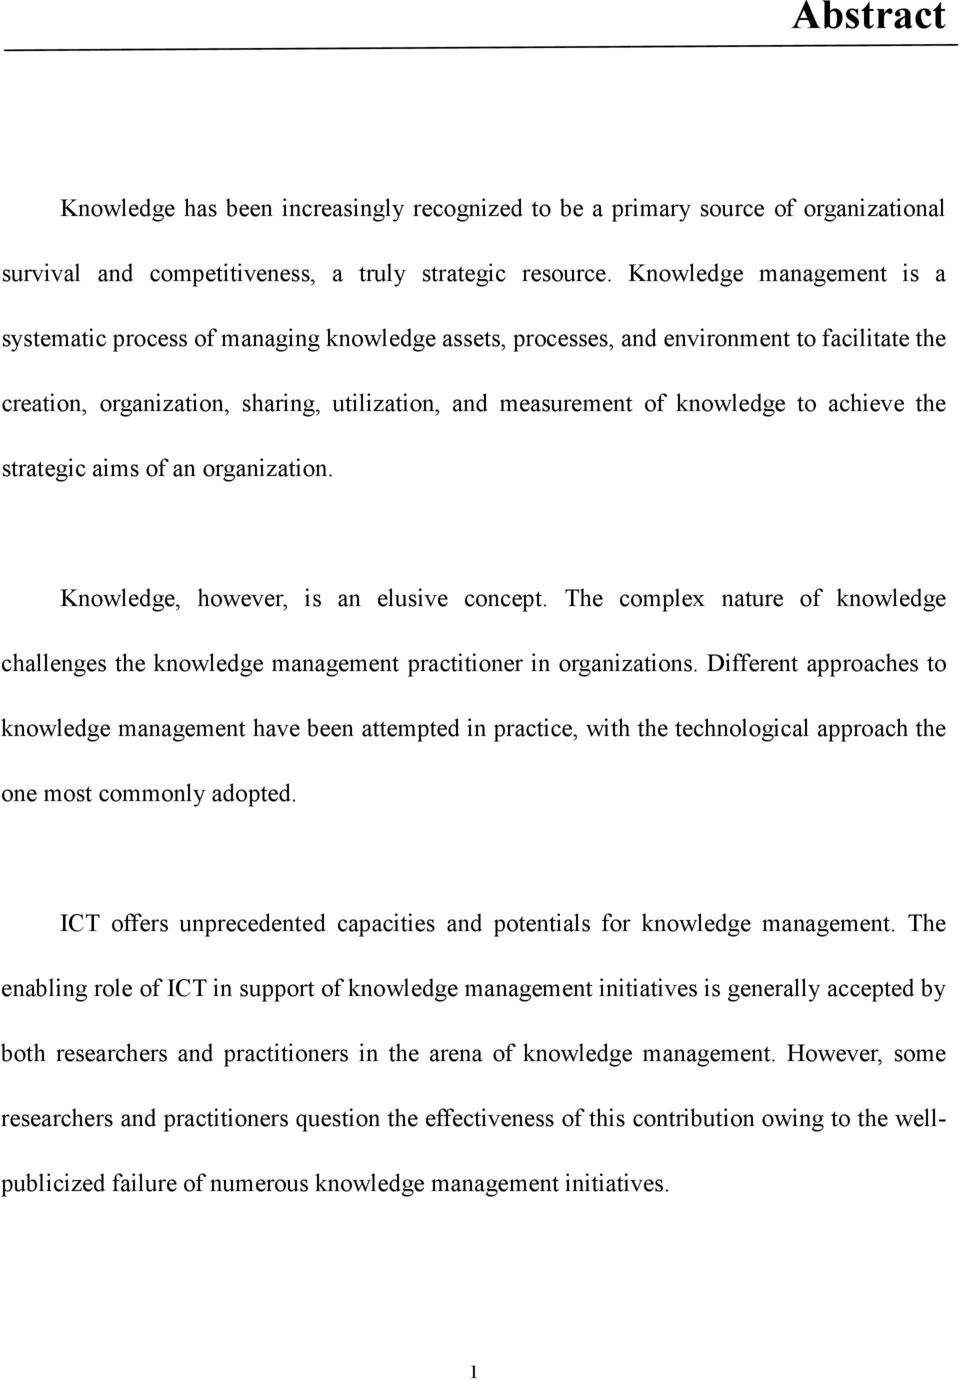 achieve the strategic aims of an organization. Knowledge, however, is an elusive concept. The complex nature of knowledge challenges the knowledge management practitioner in organizations.